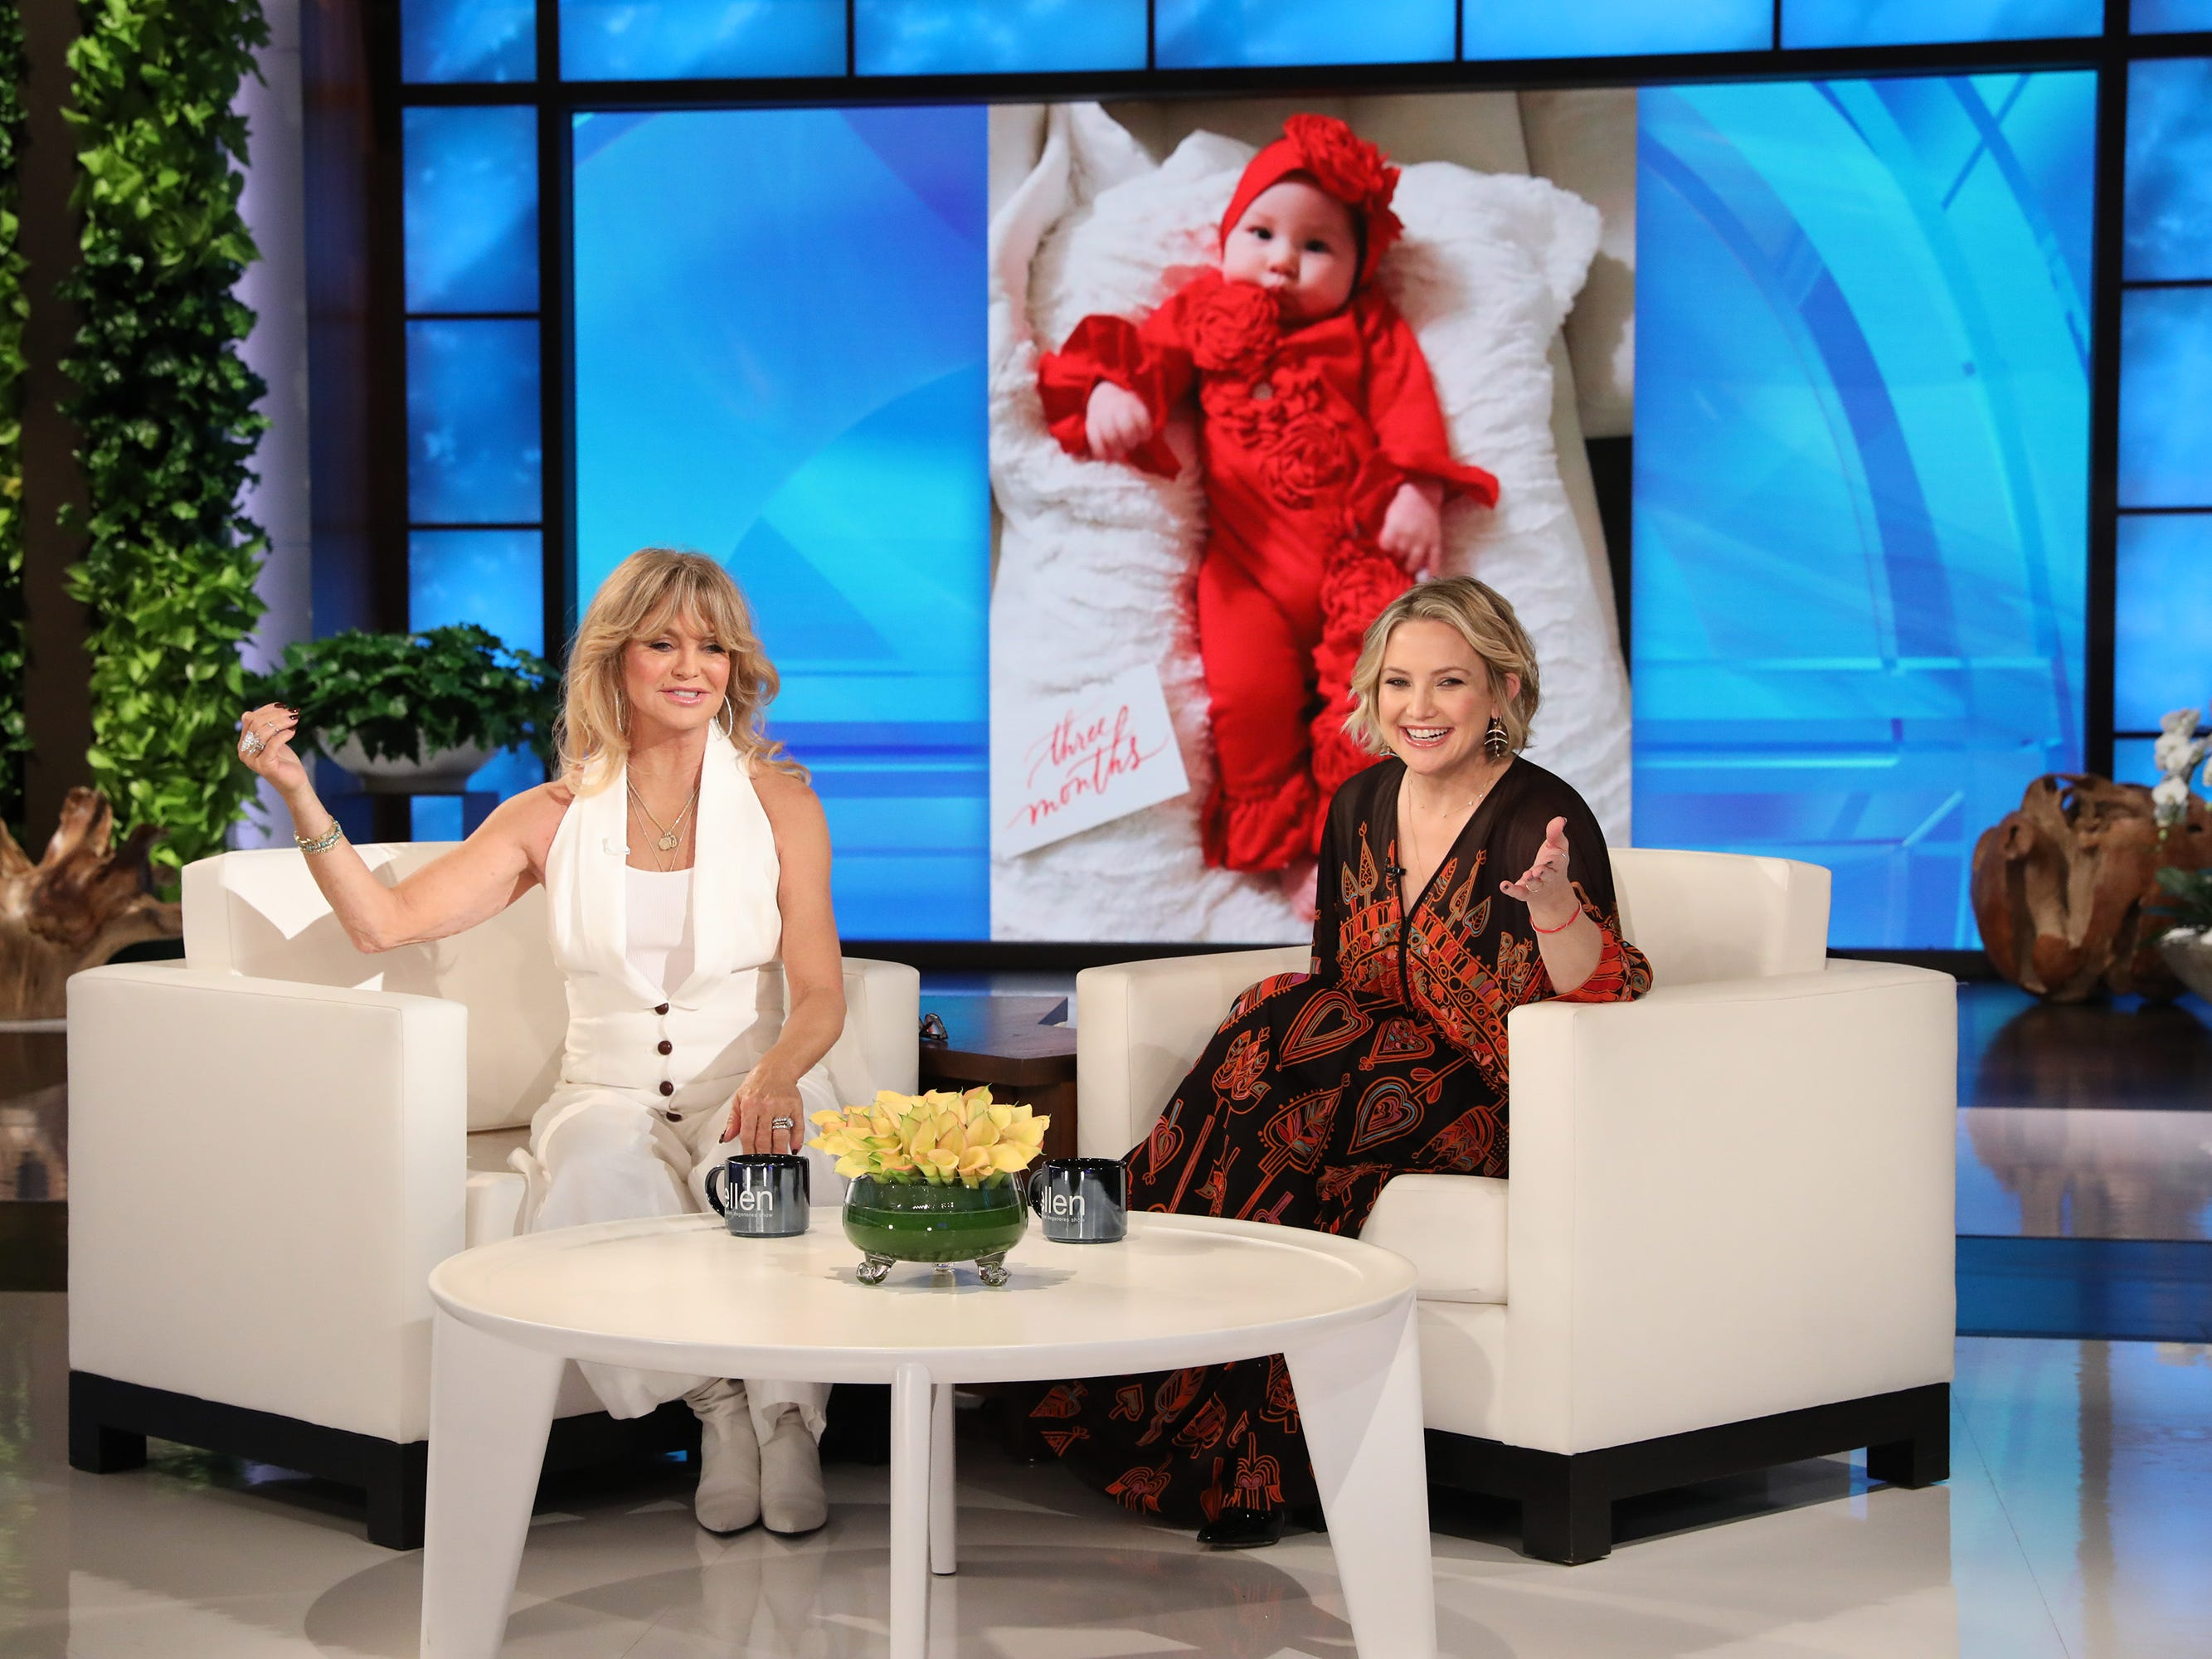 Kate Hudson says mom Goldie Hawn was 'right in there' during delivery of baby Rani Rose